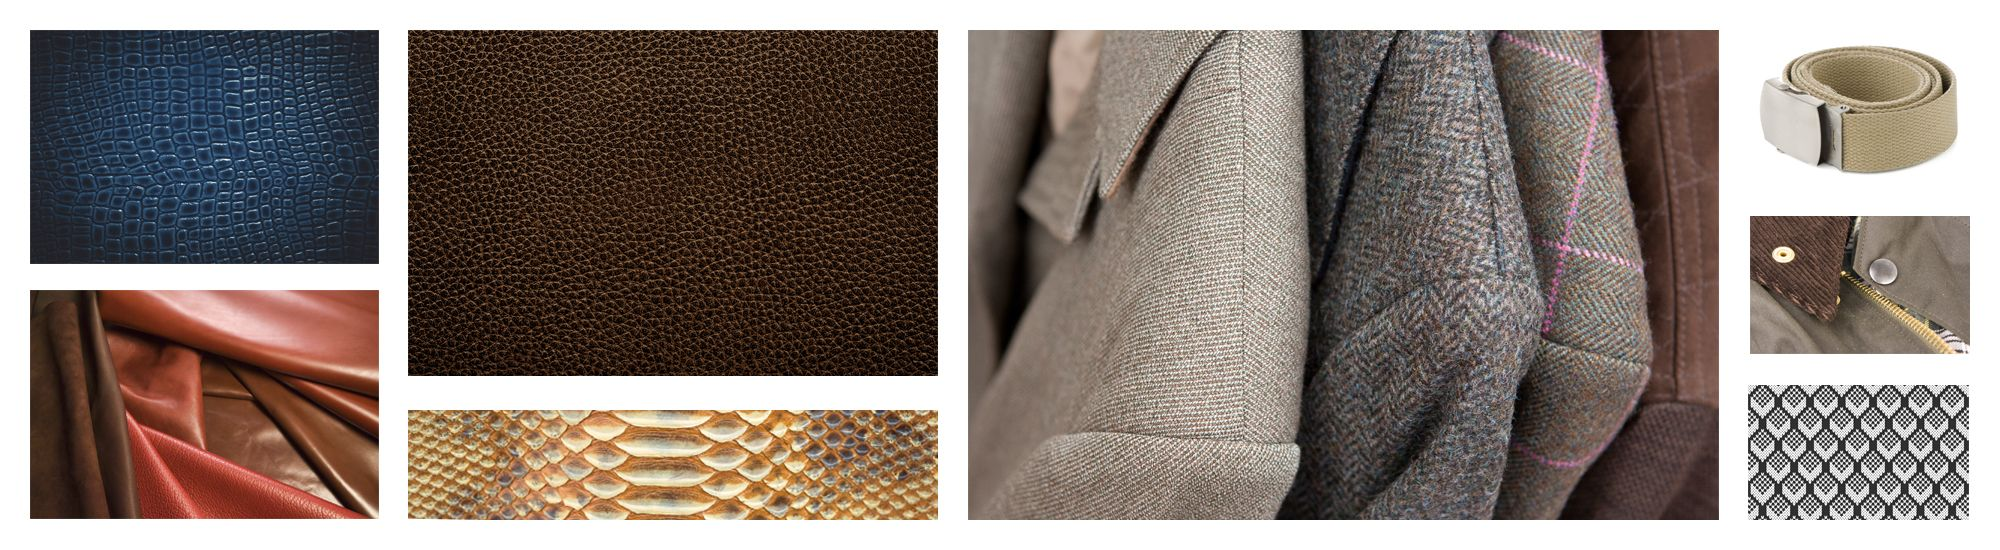 Italian Leathers & Textile Suppliers